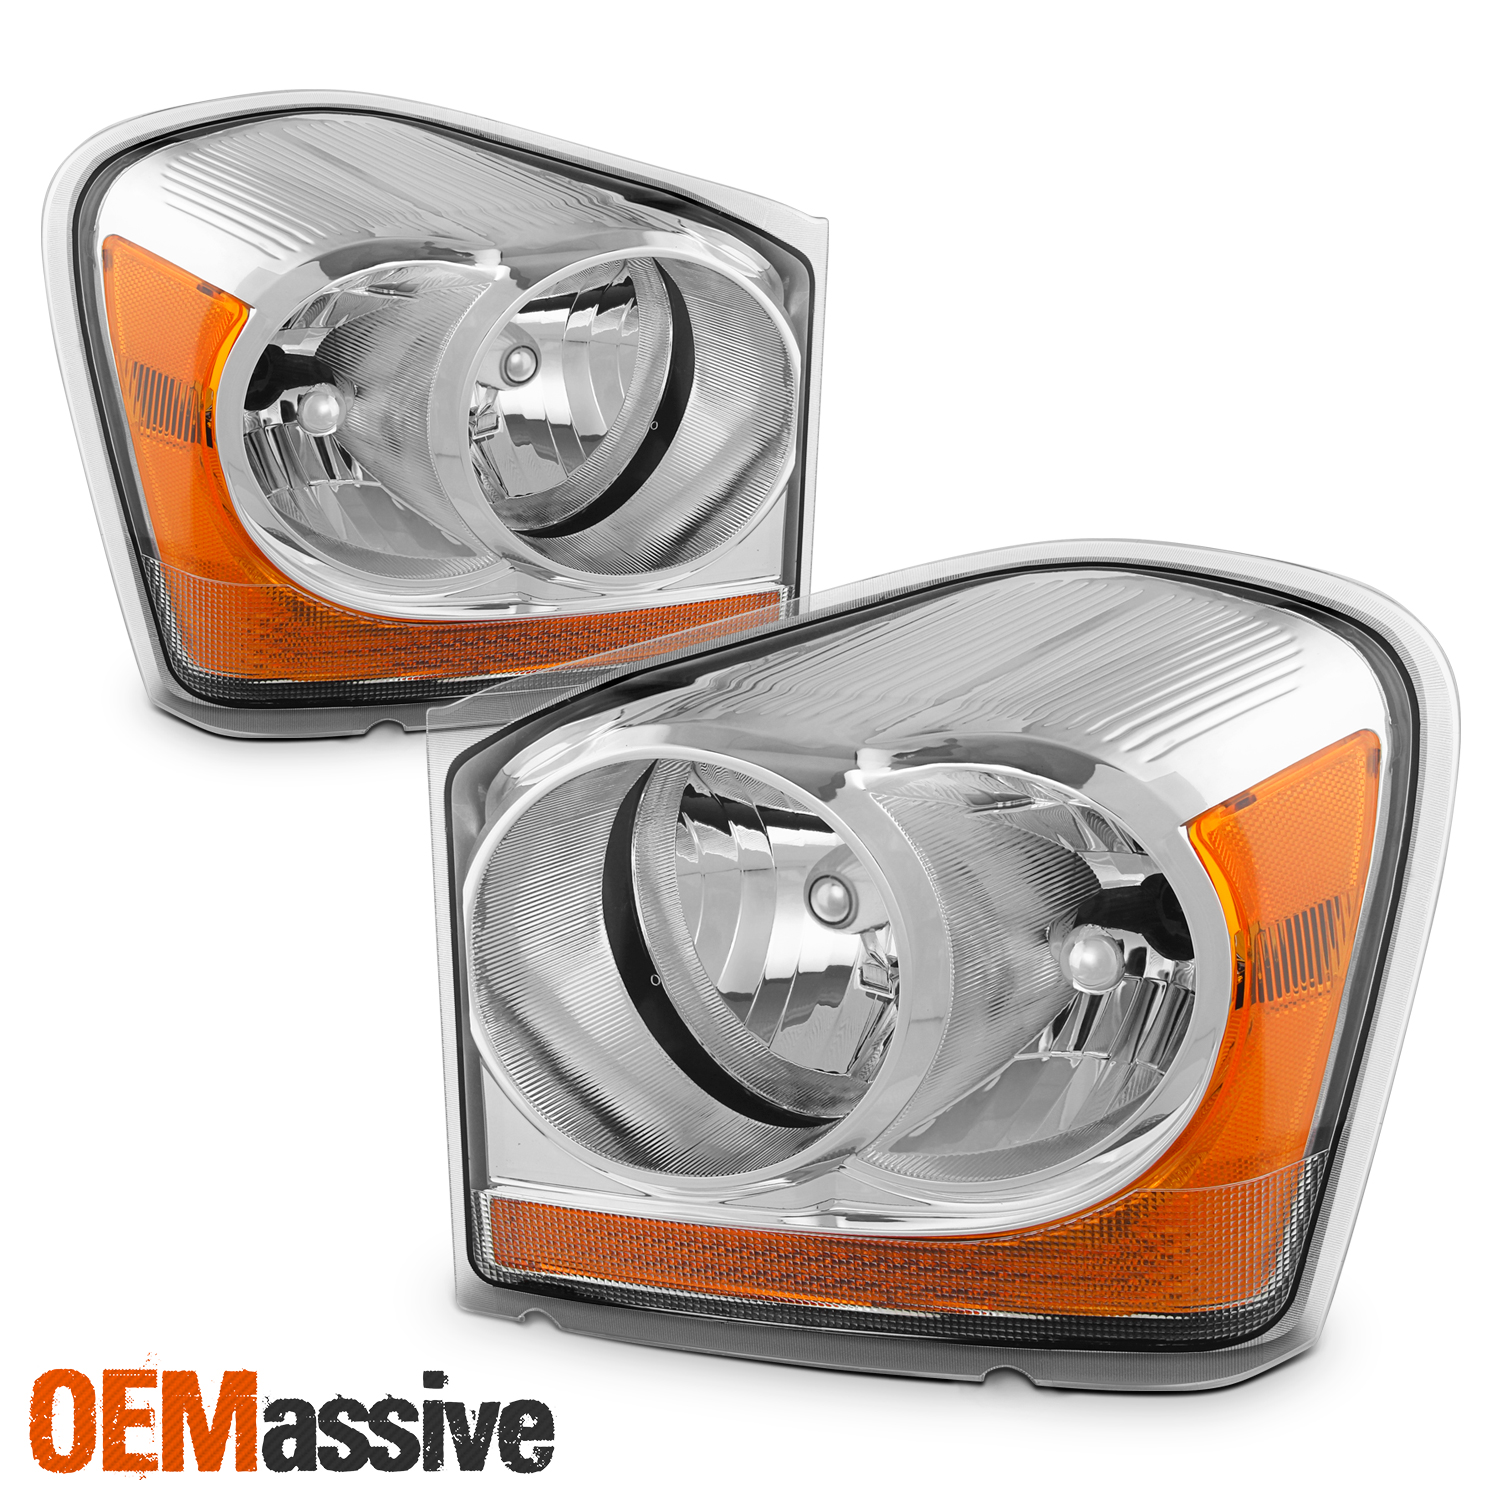 Details About Fit 2004 2005 Dodge Durango Clear Replacement Headlights Front Lamps L R